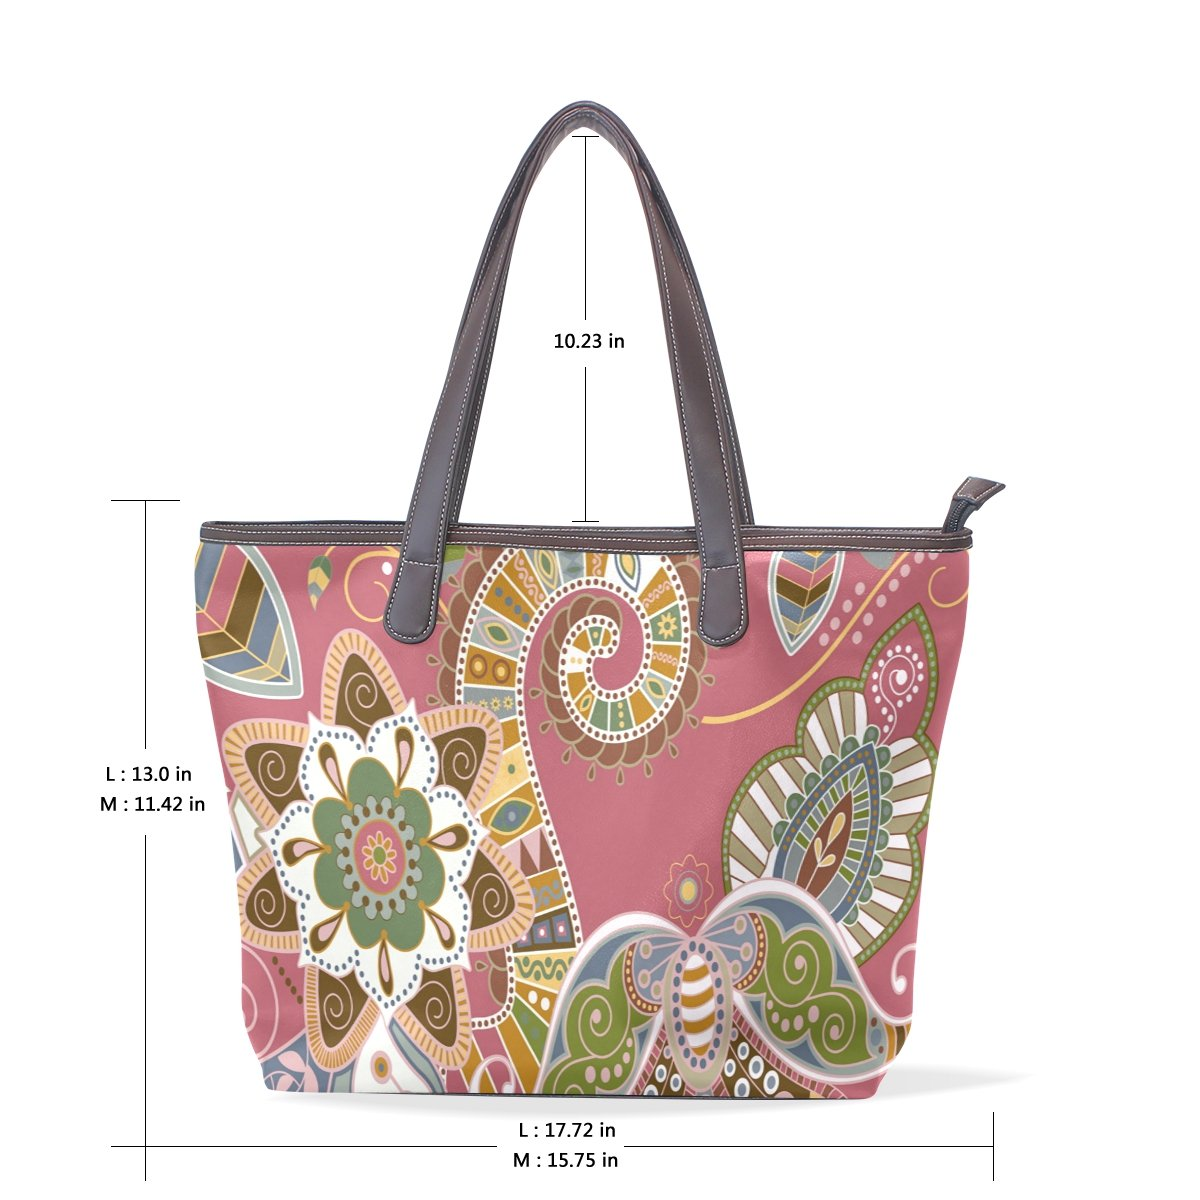 Ye Store Red Paisley Pattern Lady PU Leather Handbag Tote Bag Shoulder Bag Shopping Bag